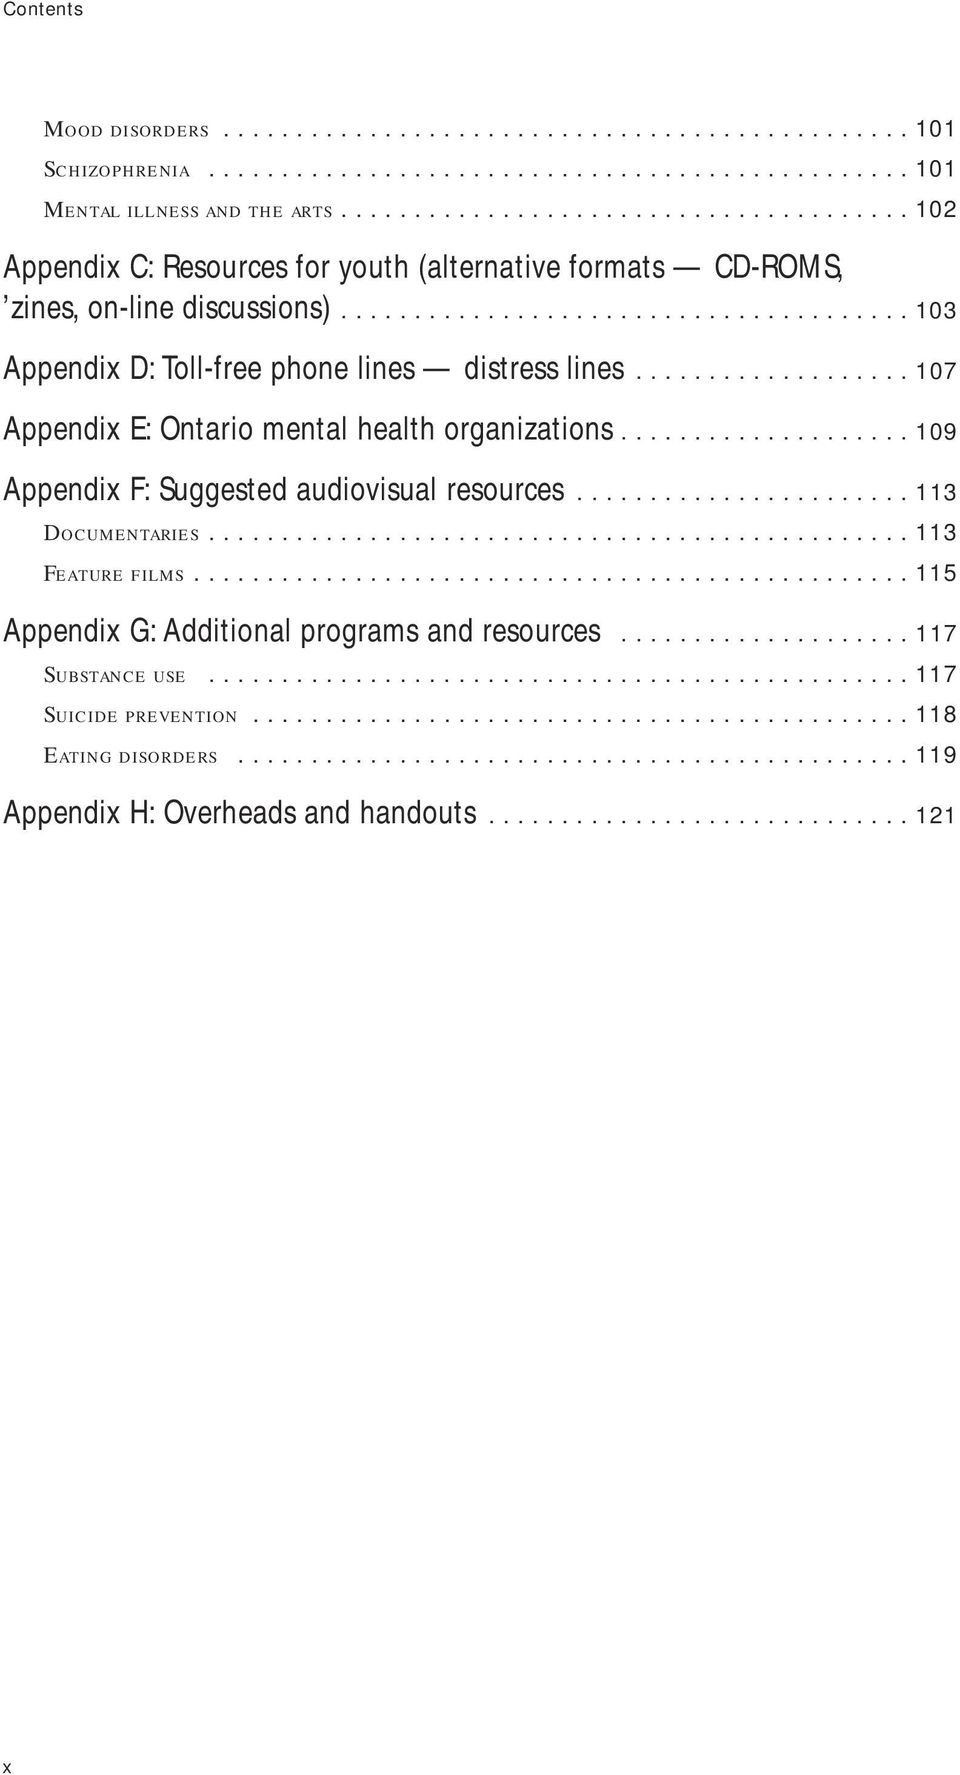 .................. 107 Appendix E: Ontario mental health organizations.................... 109 Appendix F: Suggested audiovisual resources....................... 113 Documentaries................................................ 113 Feature films.